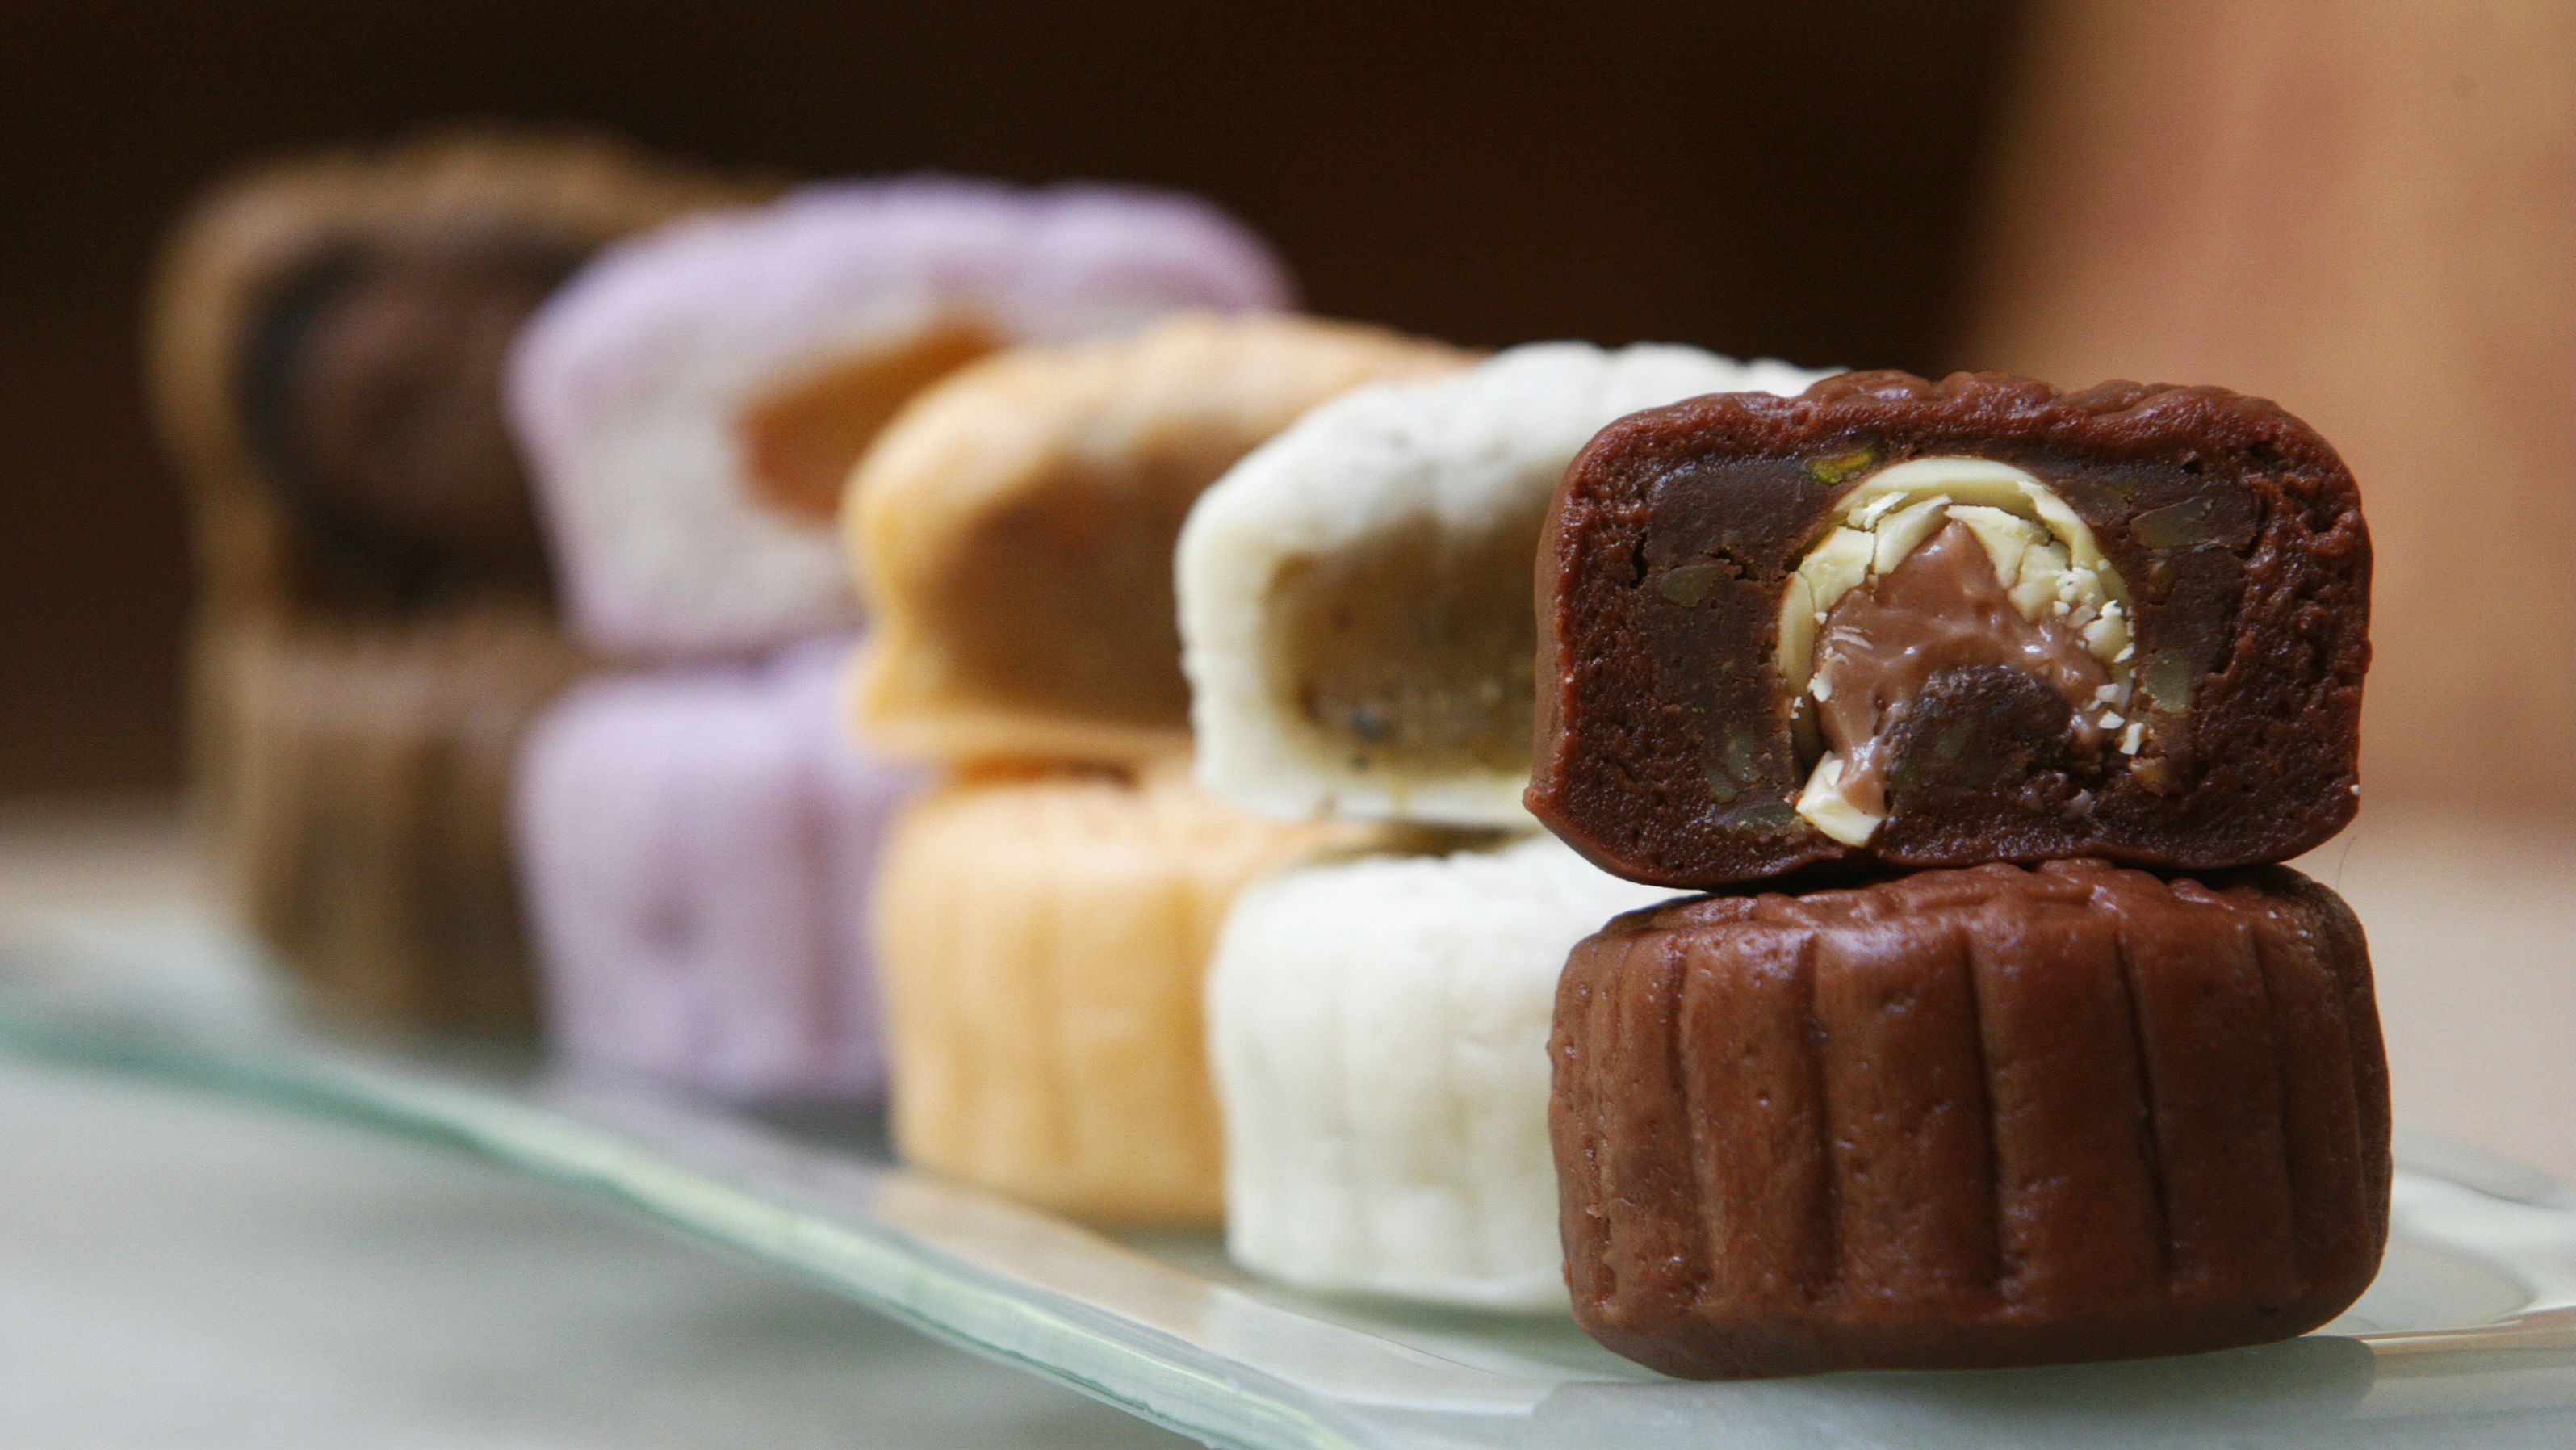 A variety of mooncakes with different fillings are displayed for the camera at a hotel in Singapore September 13, 2007. Ethnic Chinese families in Singapore usually give boxes of mooncakes to their families, friends and business contacts around the time of the mid-Autumn festival. Mooncakes displayed here are (front to back) Black Forest, Sweet Osmanther, Orange, Yam and Chocolate.